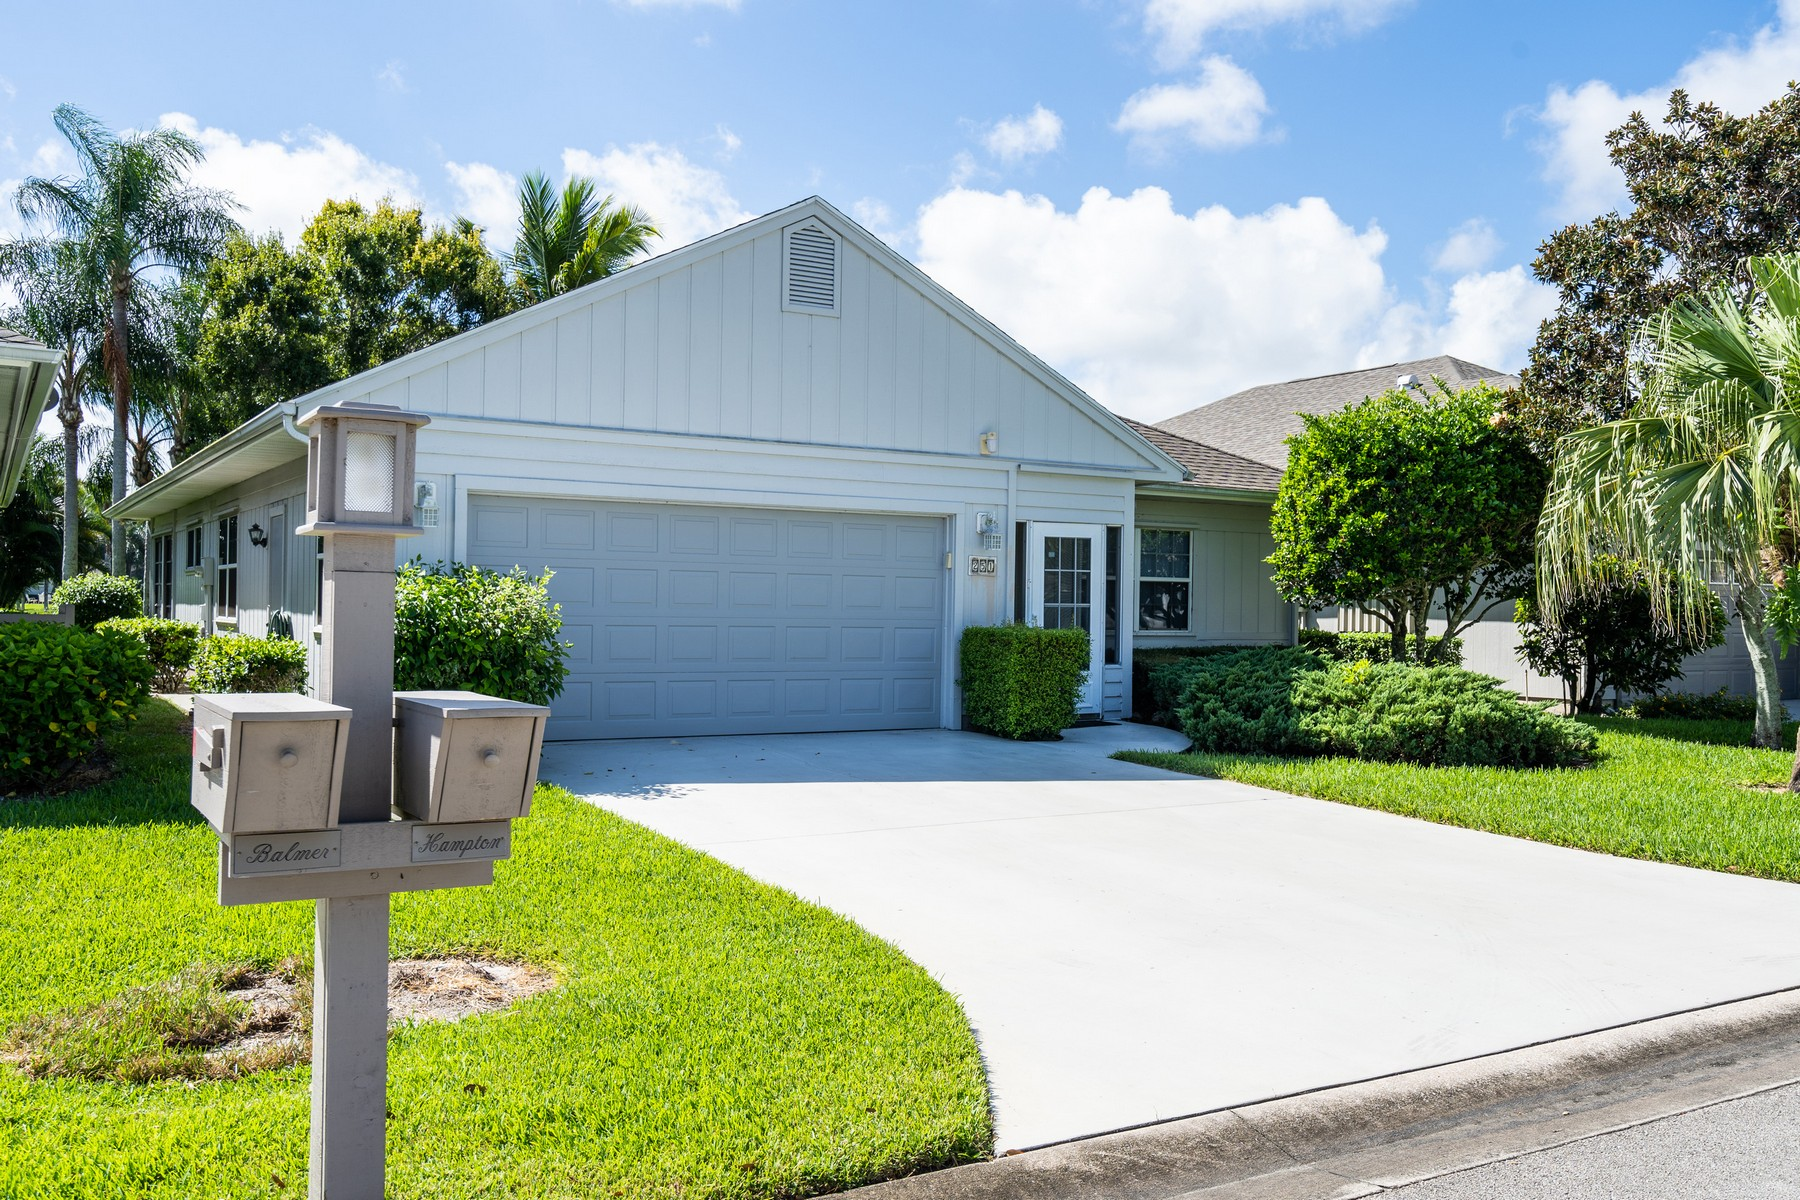 Single Family Homes for Sale at Lakefront Home in Garden Grove 251 Garden Grove Parkway Vero Beach, Florida 32962 United States